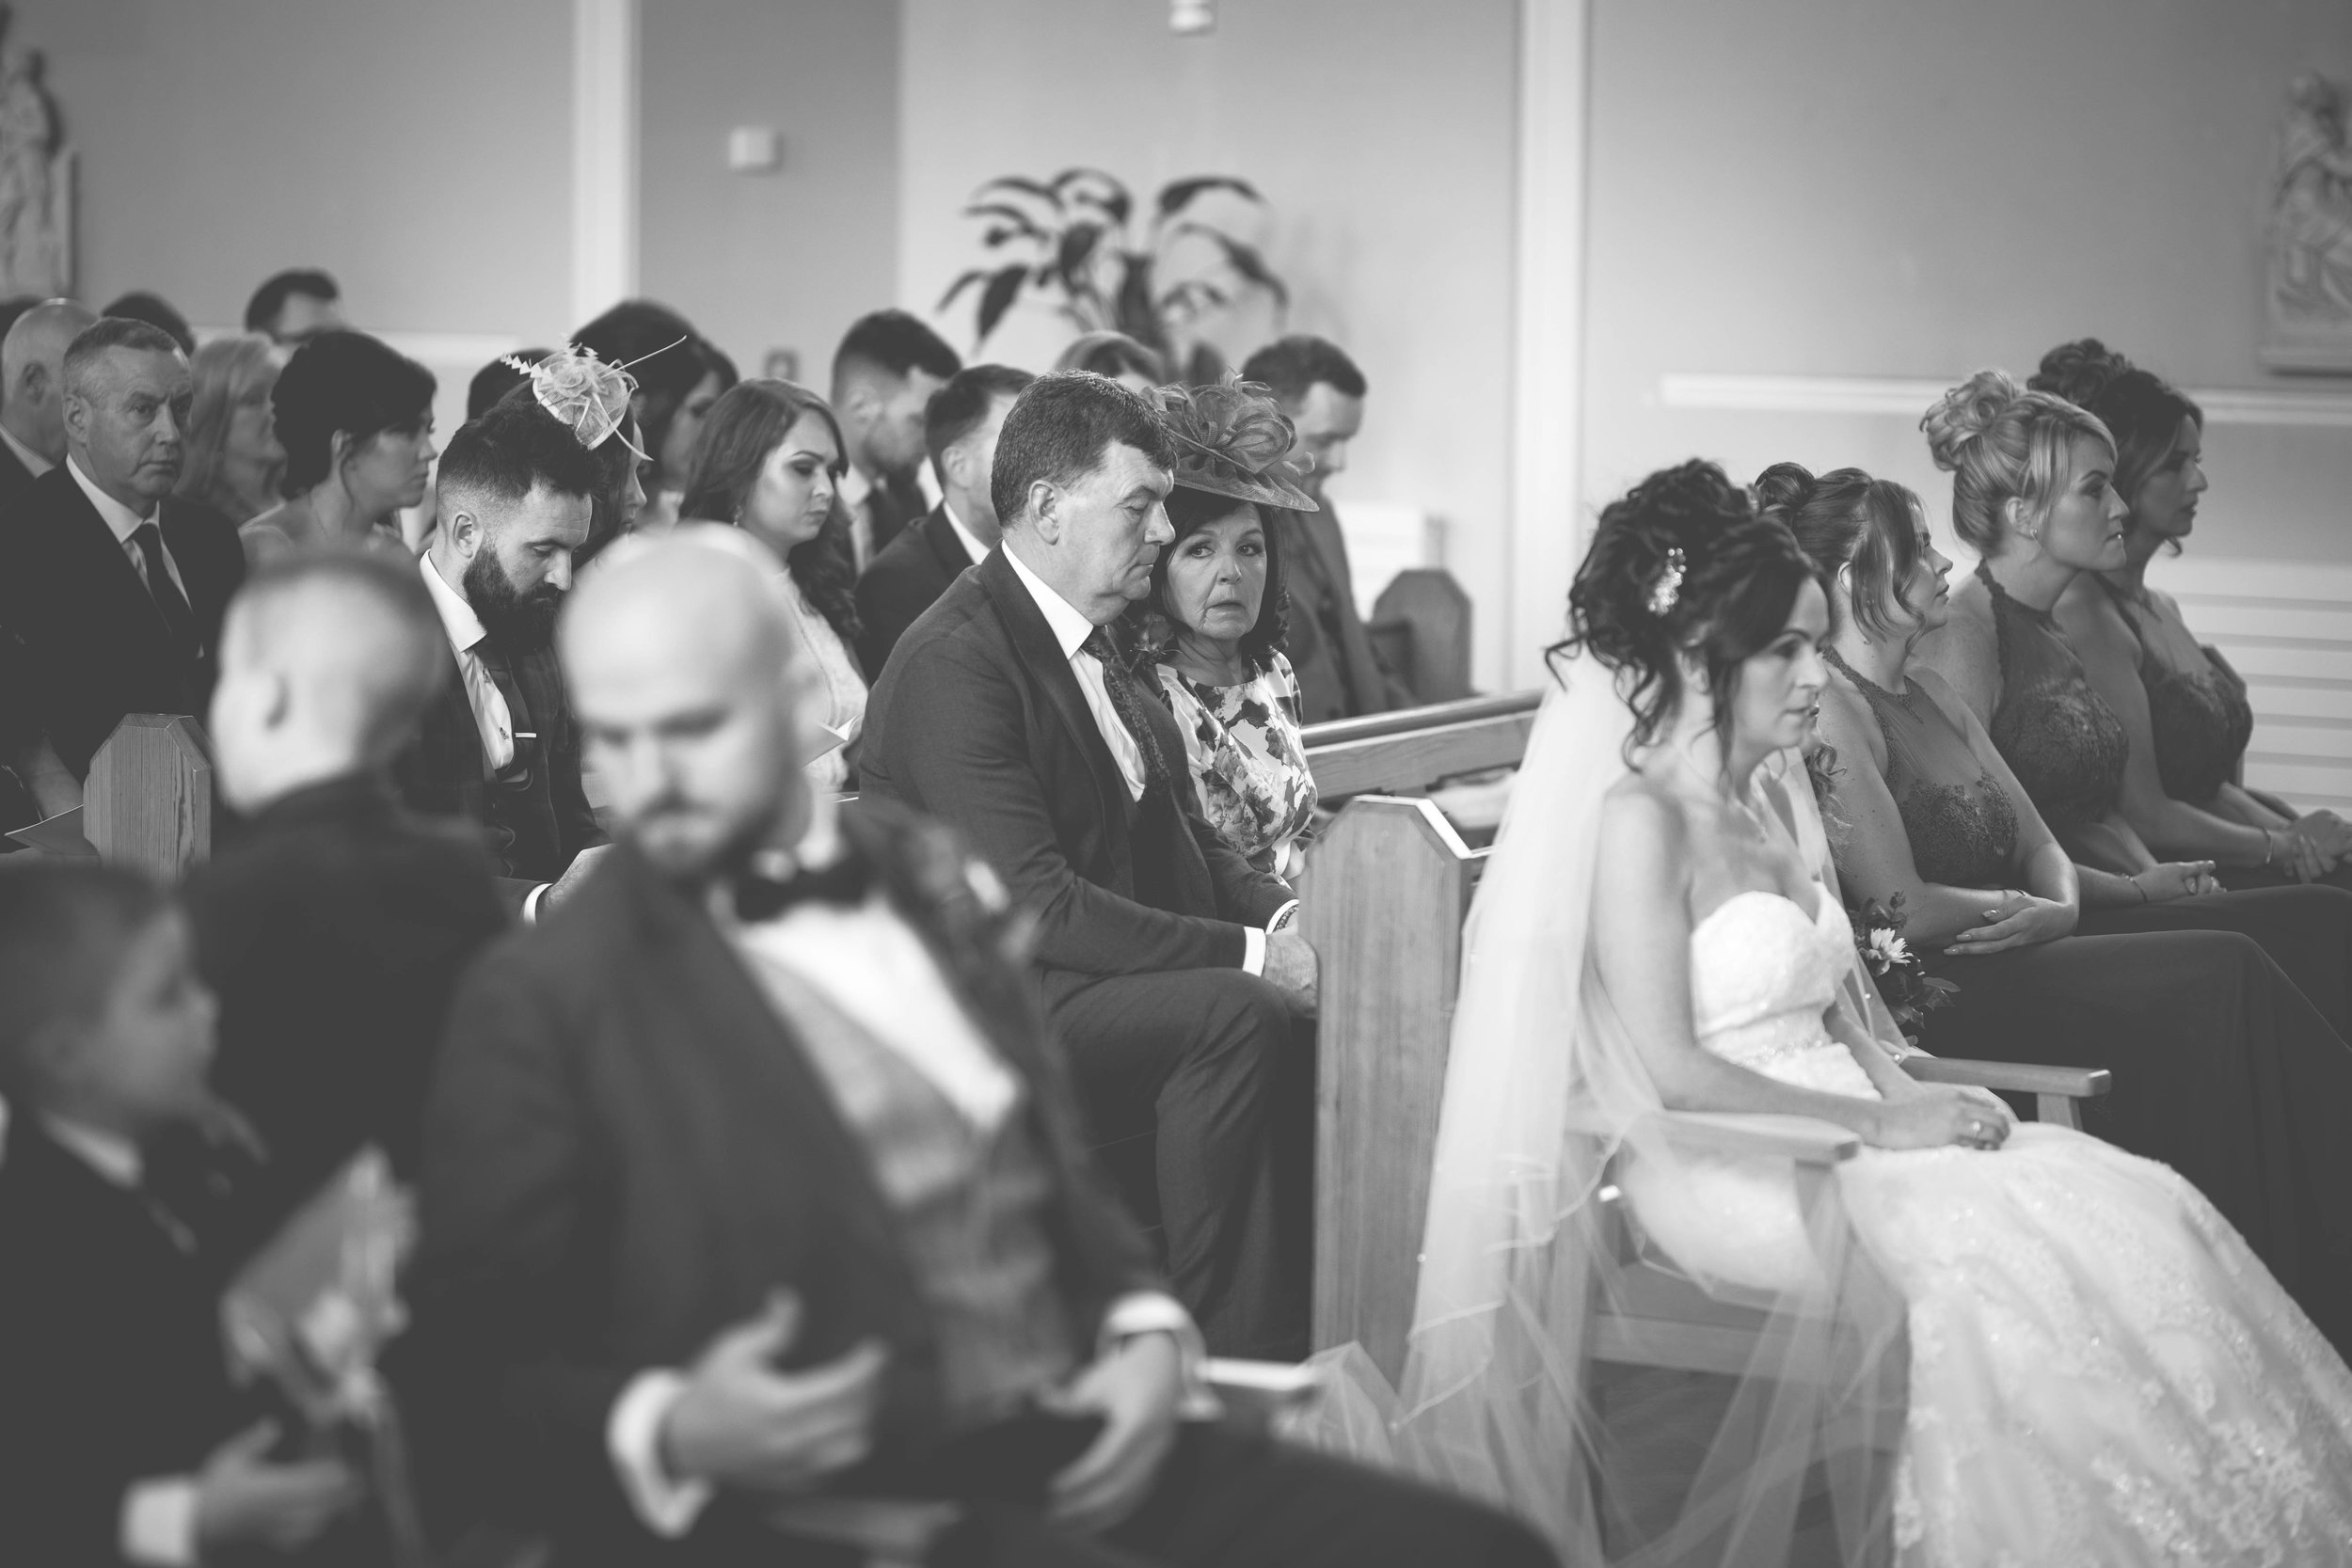 Aisling & Andy - Ceremony-39.jpg